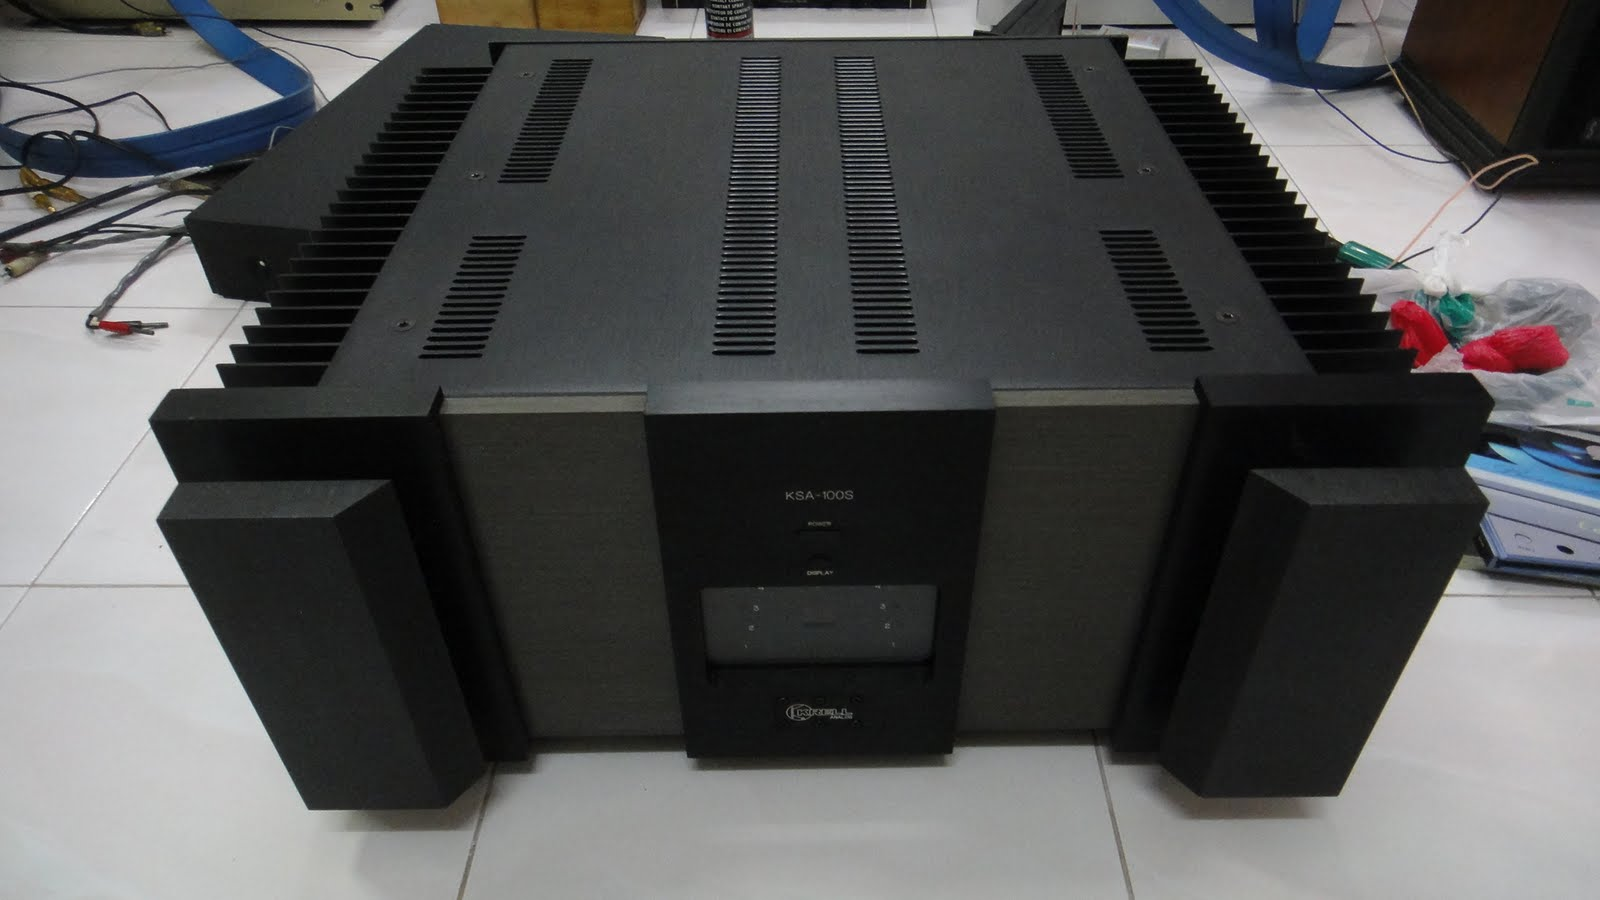 crell amp http://loyhifi.blogspot.com/2011/08/krell-ksa-100s-power-amplifier-used.html